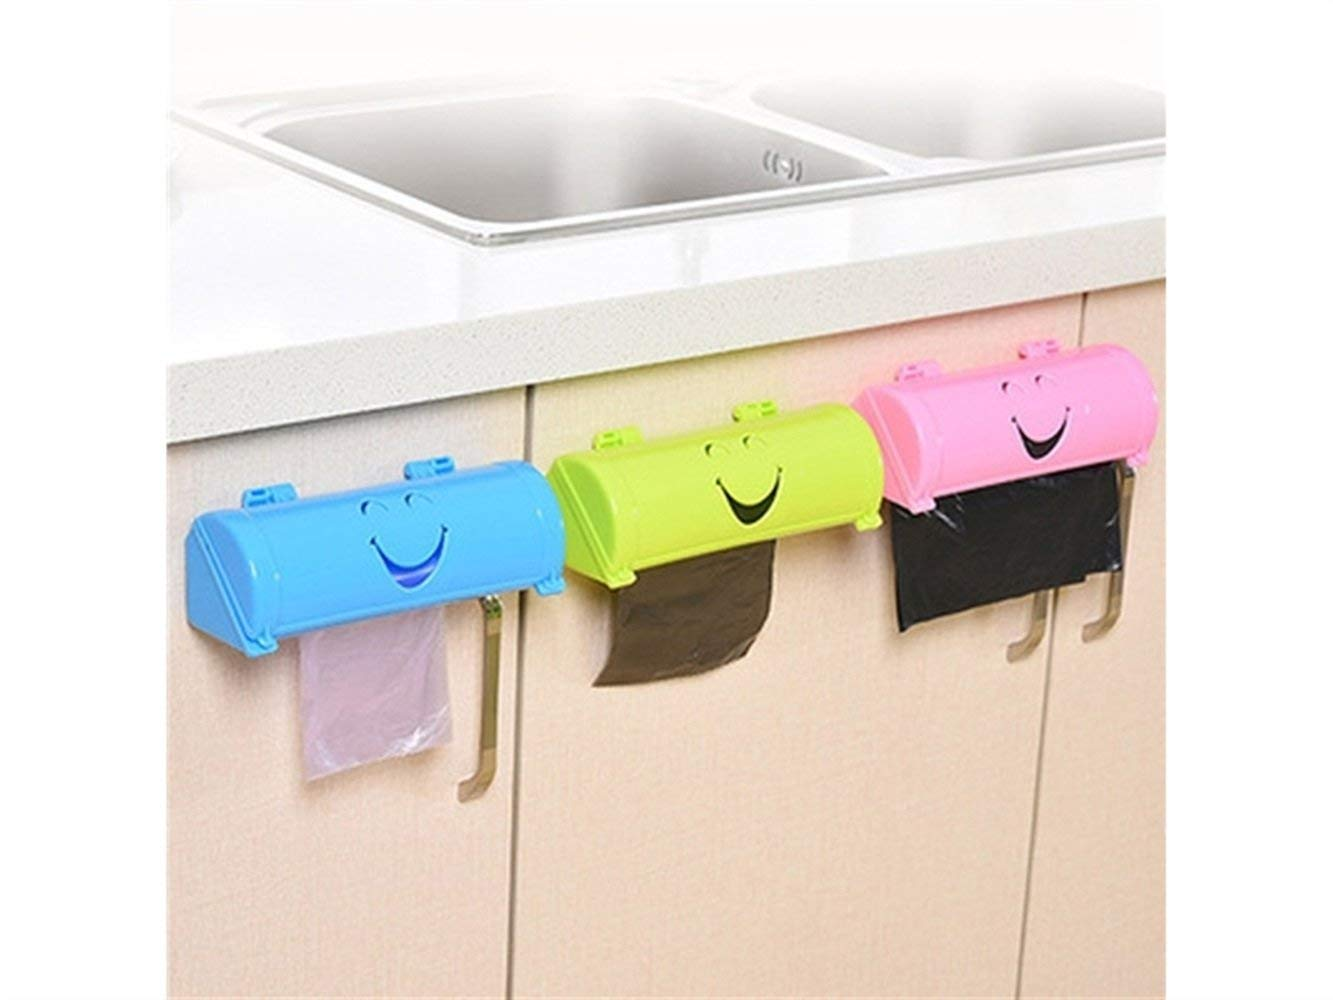 Yuchoi Perfectly Shaped Eco-friendly Smile Face Garbage Bags Storage Box Kitchen Paste Type Plastic Container